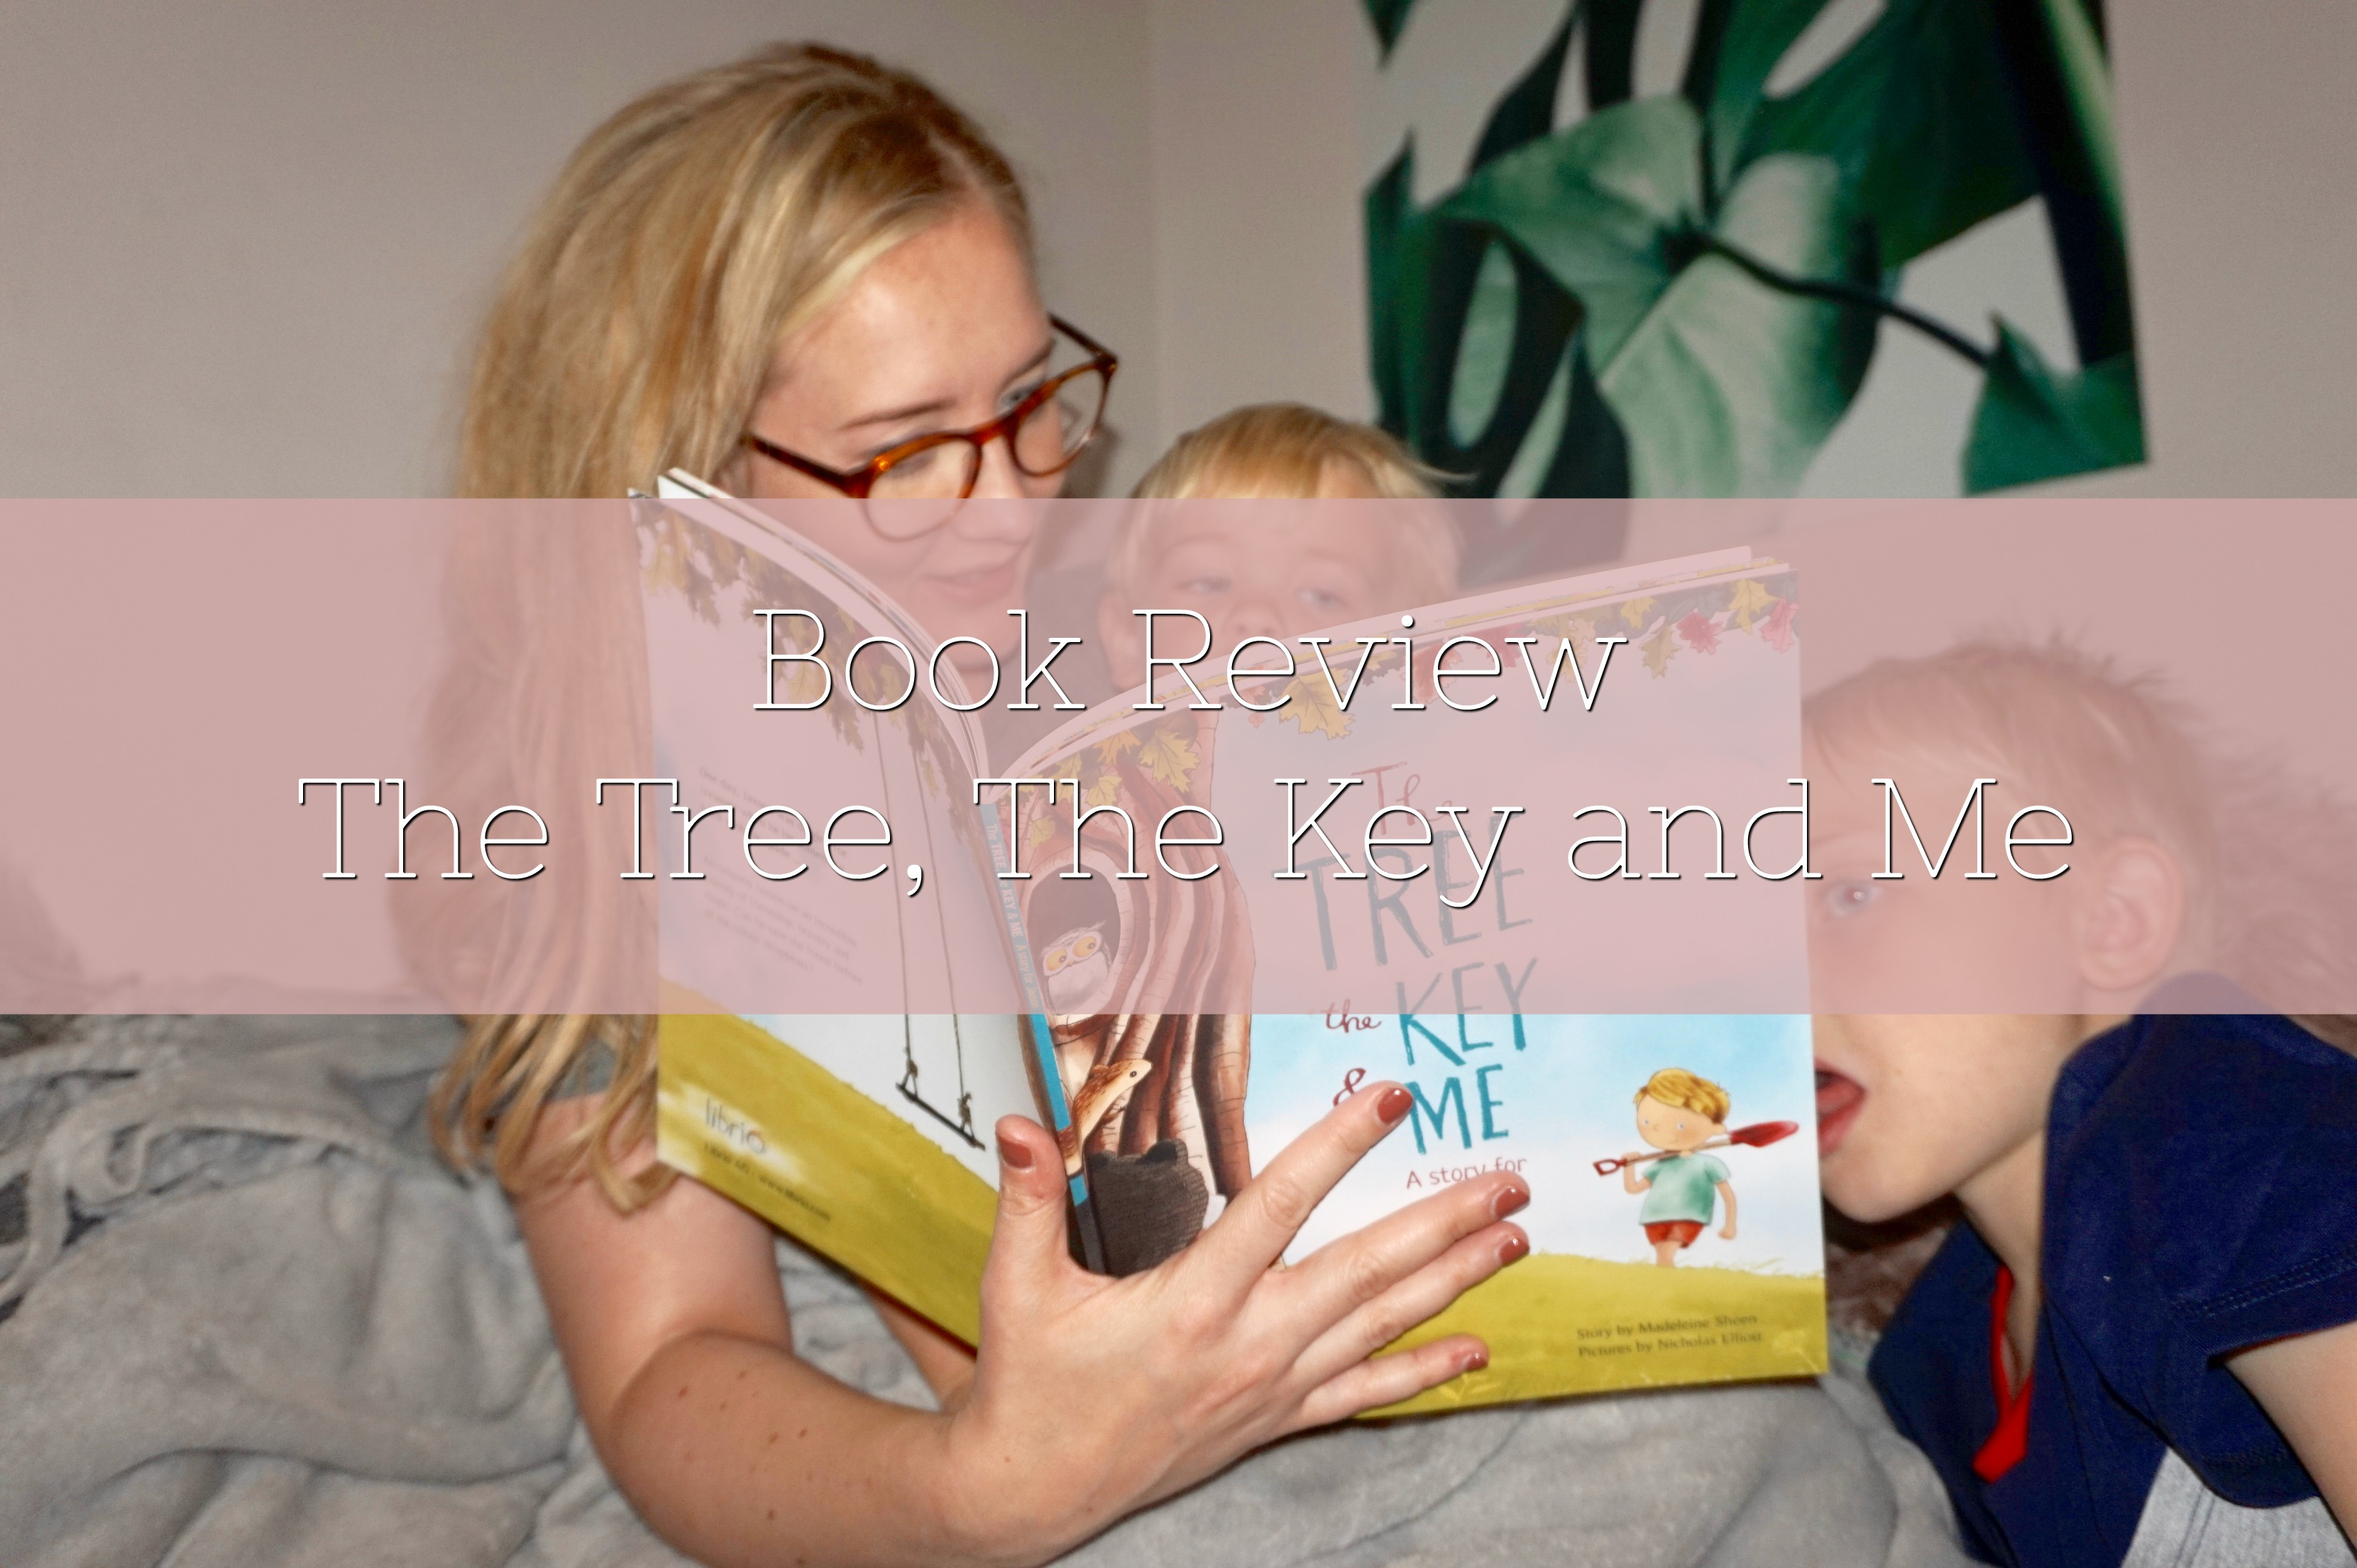 Book Review ~ The Tree, The Key and Me from Librio